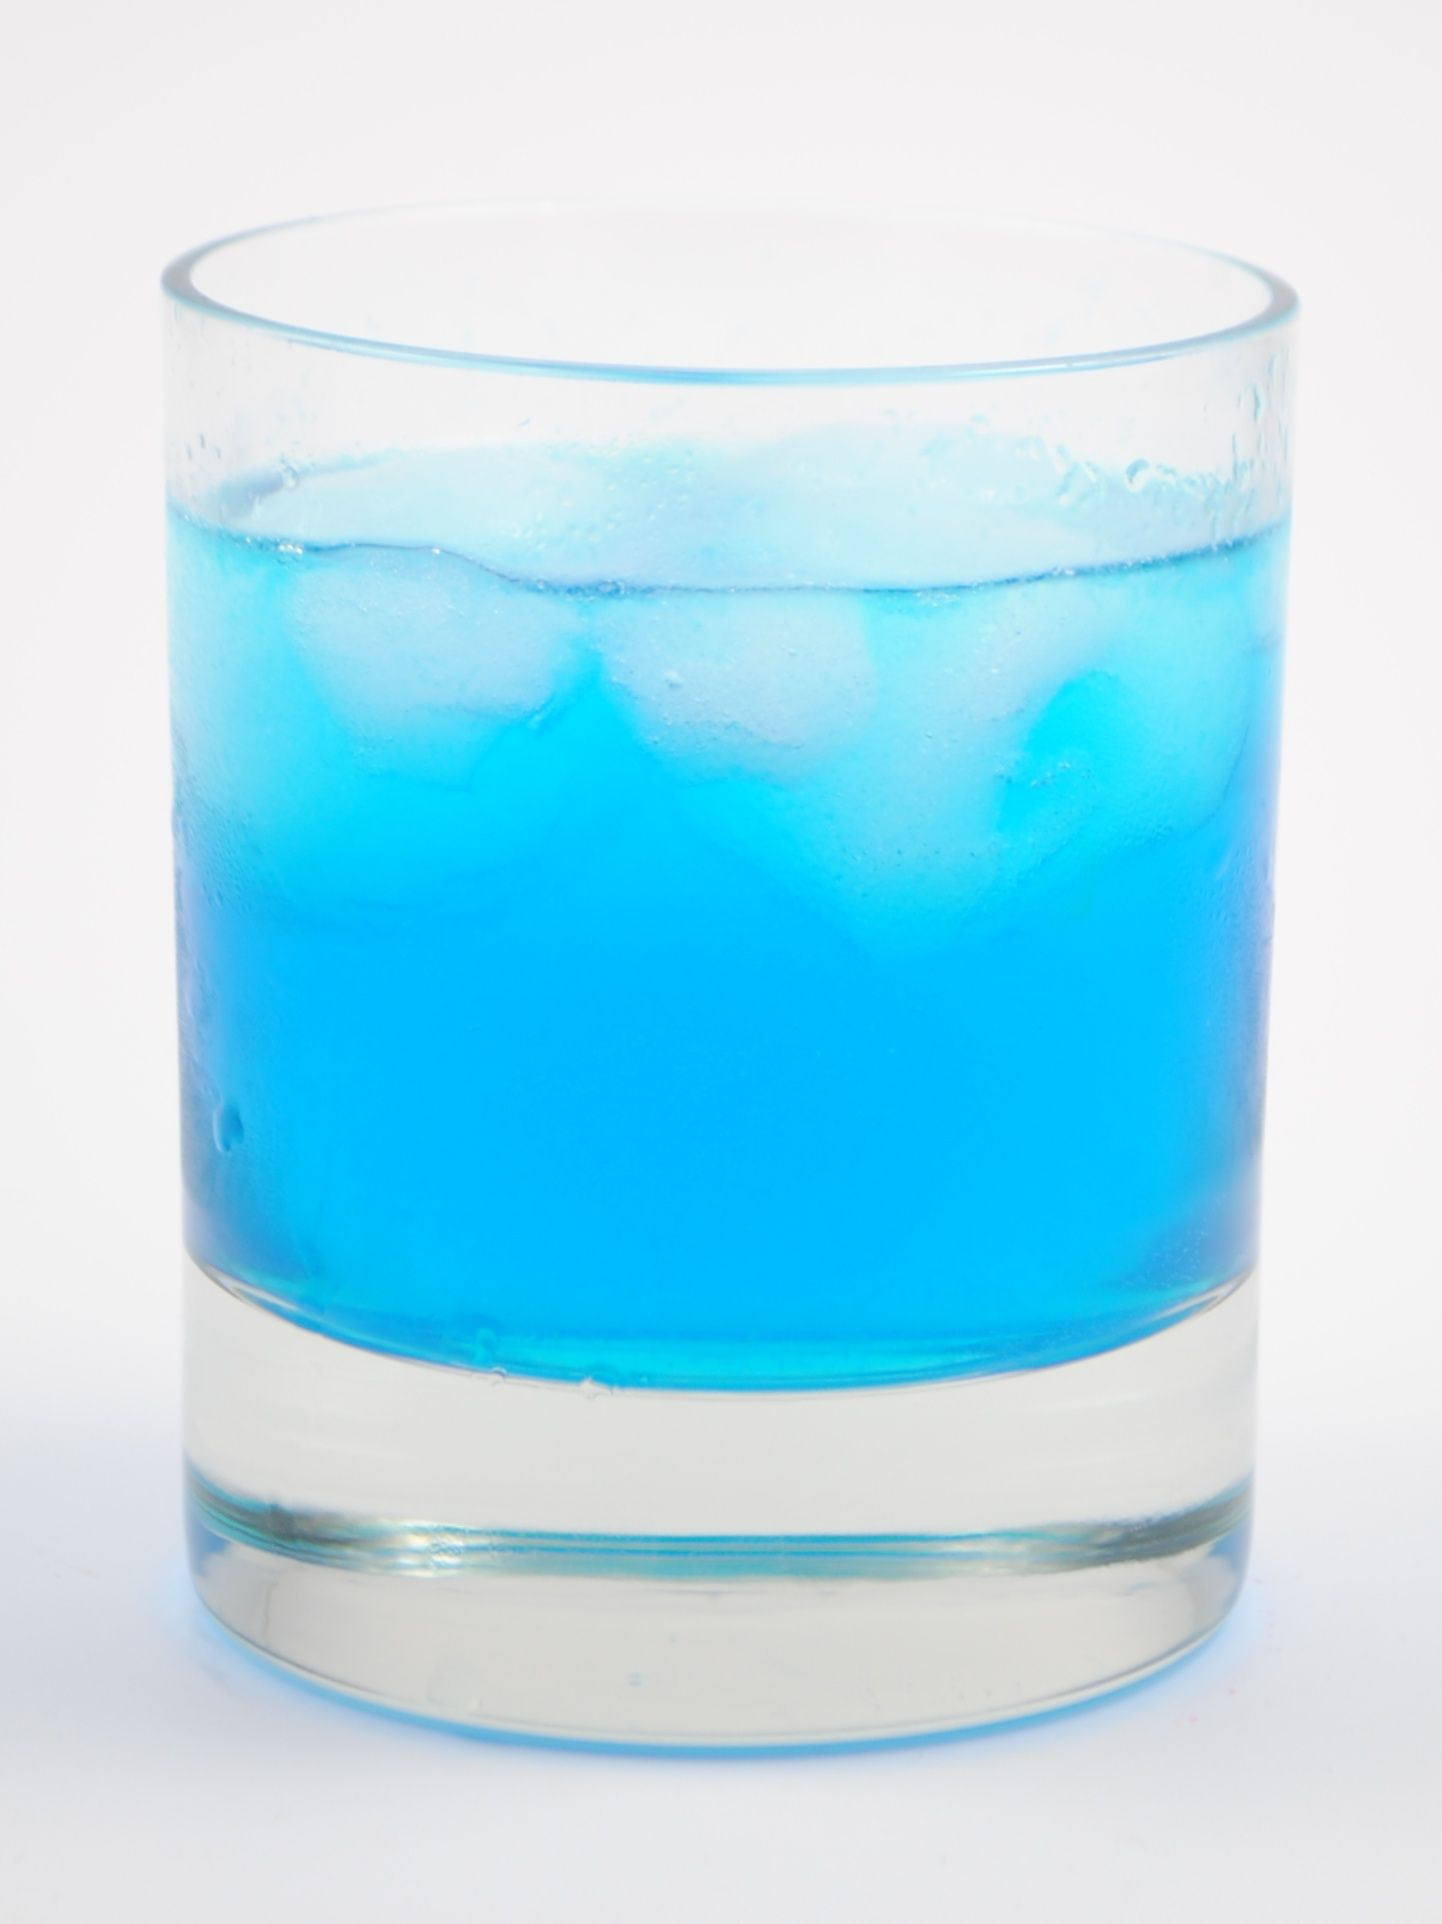 Papa smurf cocktail drink recipe 2 oz blue curacao 1 2 for Cocktail curacao